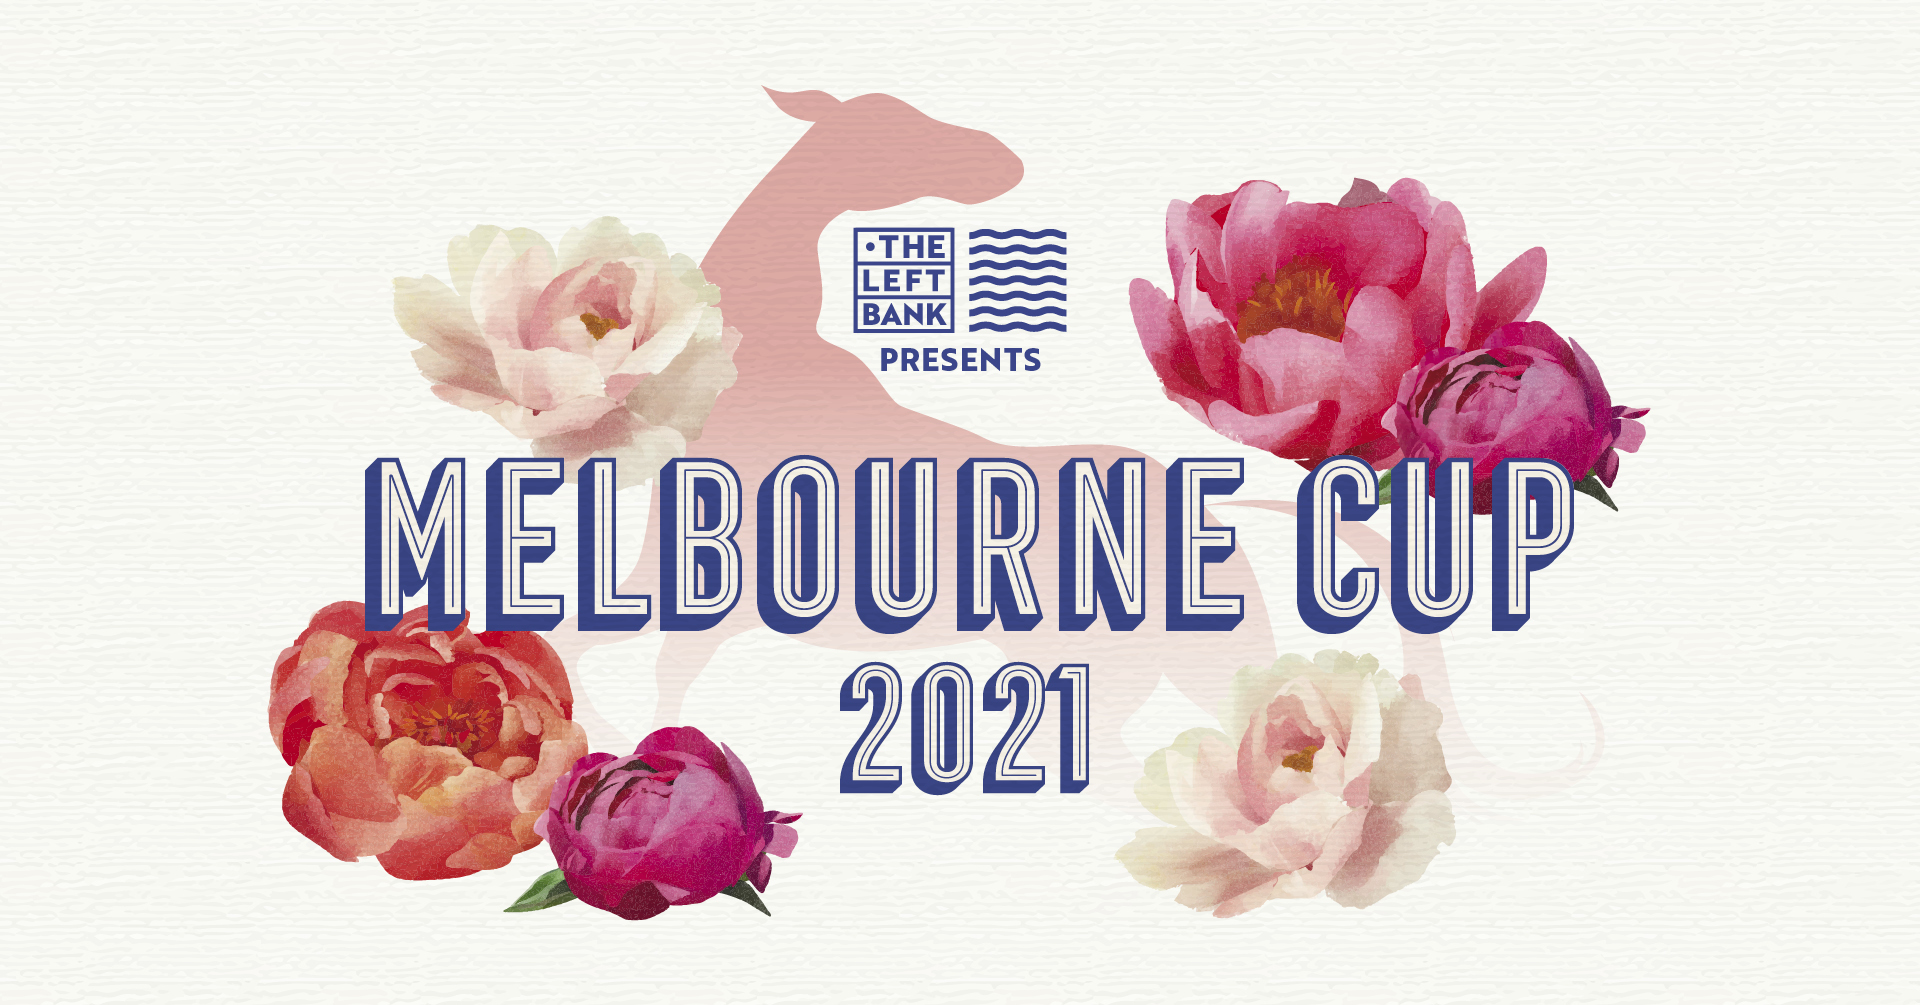 Melbourne Cup 2021 at The Left Bank